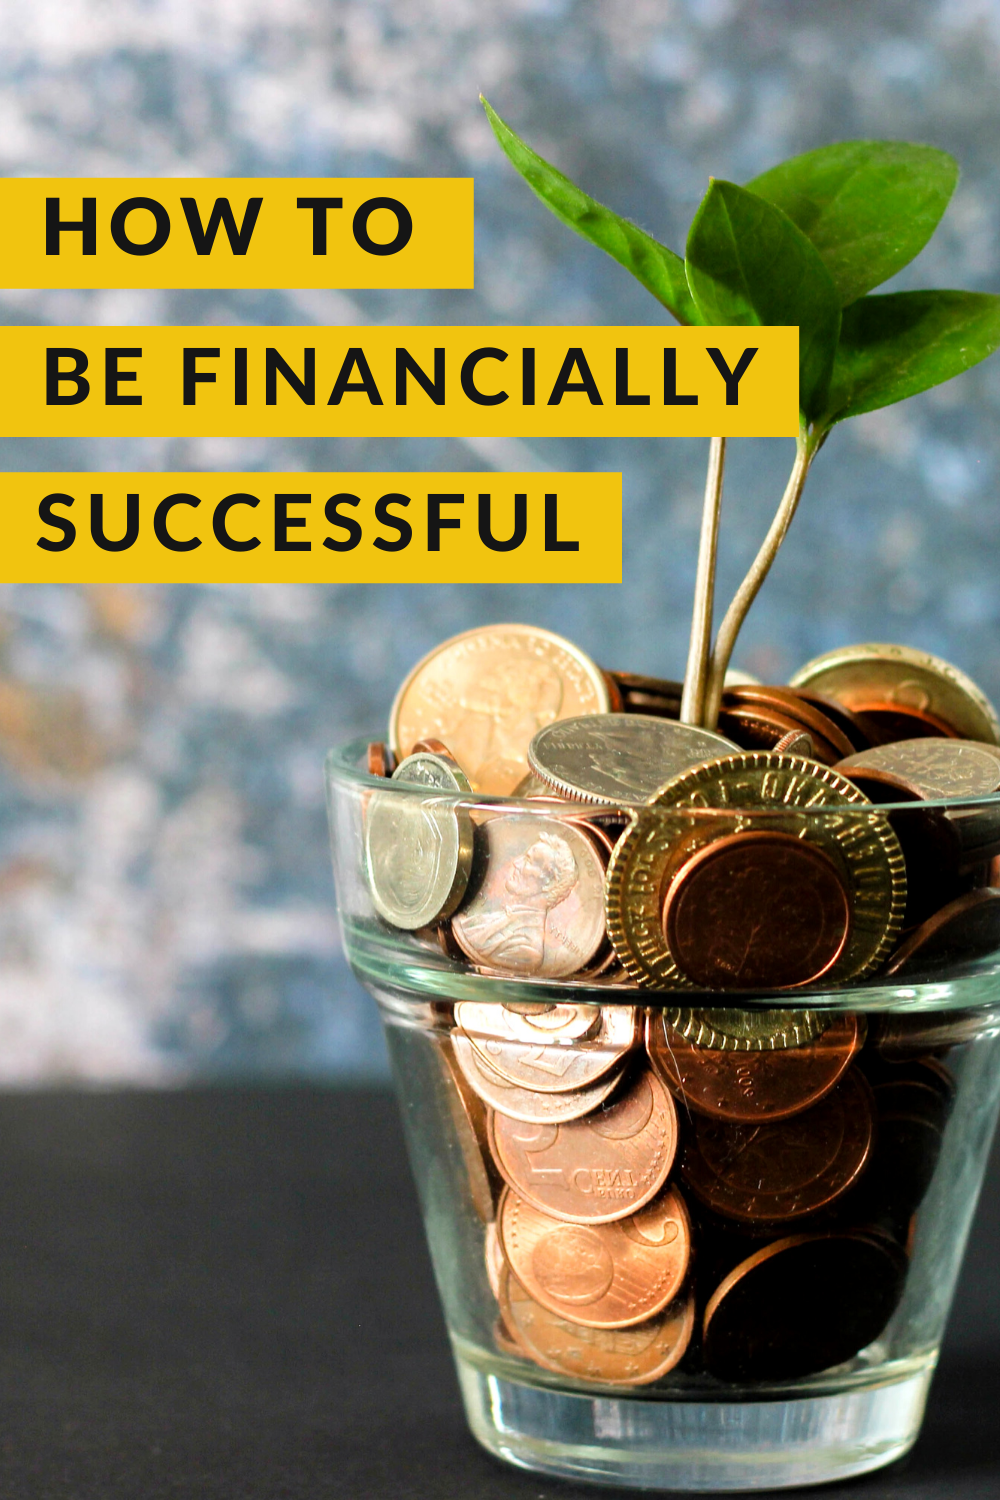 How to Be Financially Successful in 2020